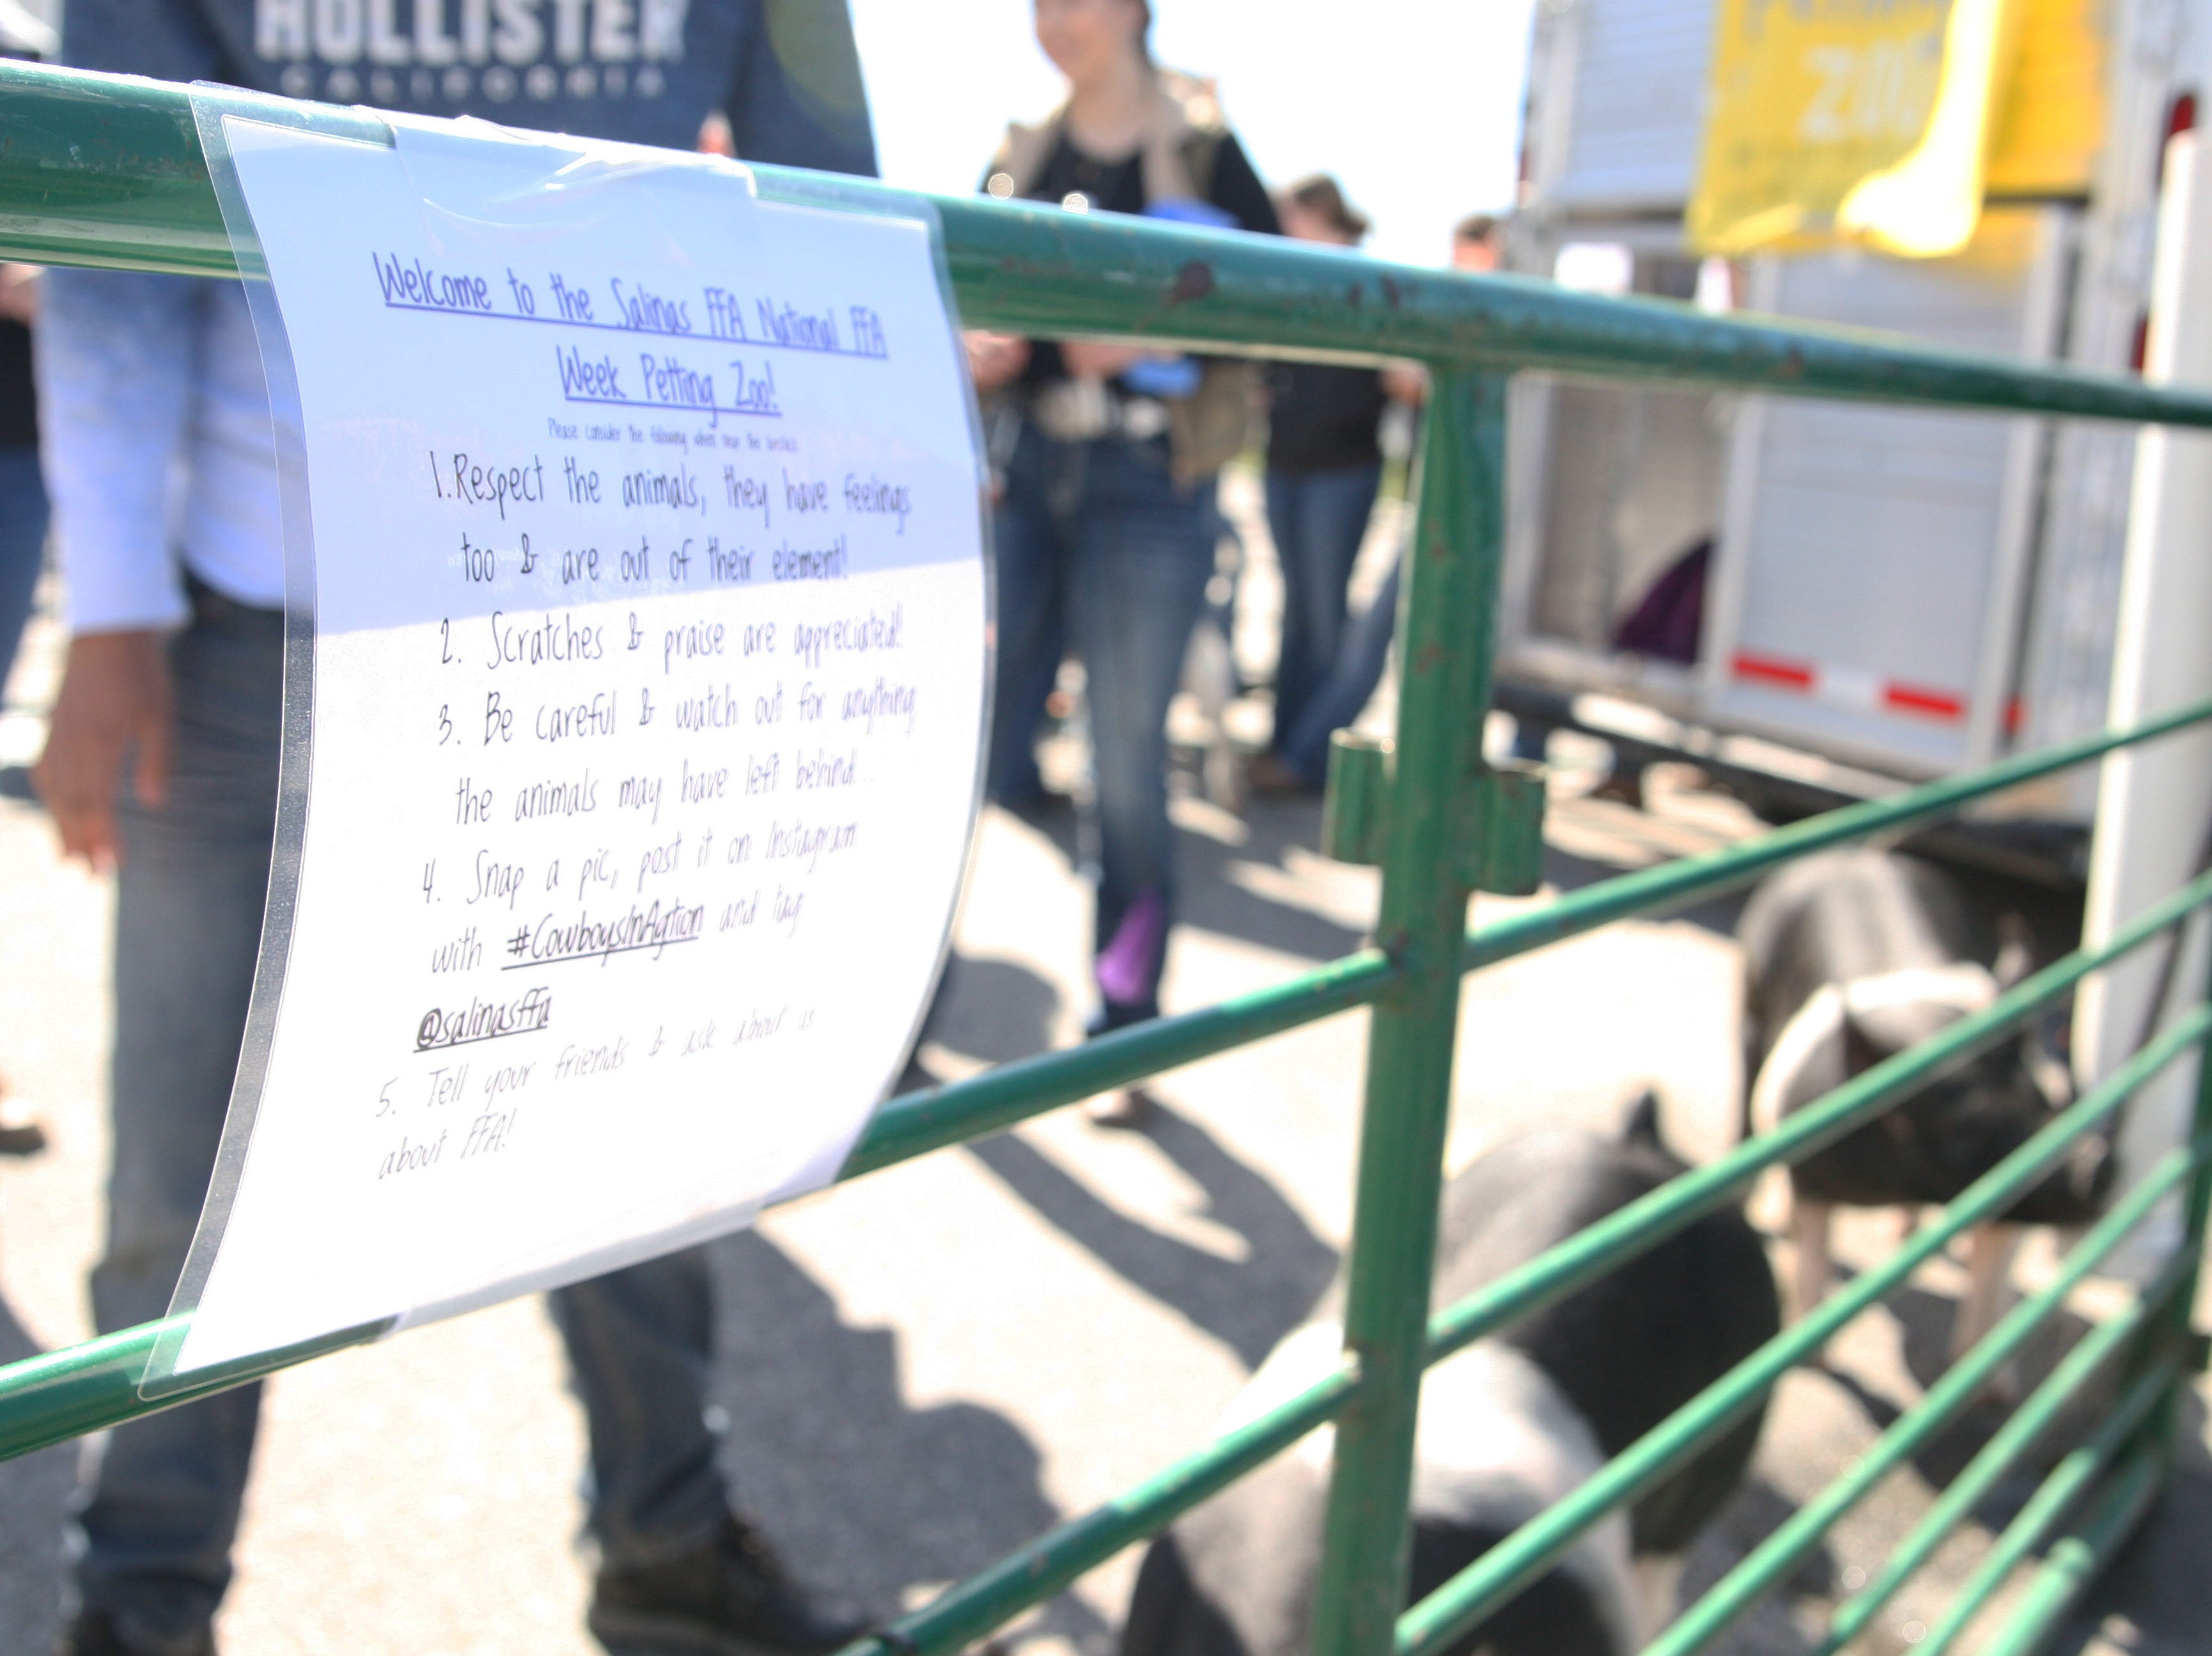 A sign taped to the petting zoo lists the rules for interacting with the animals.